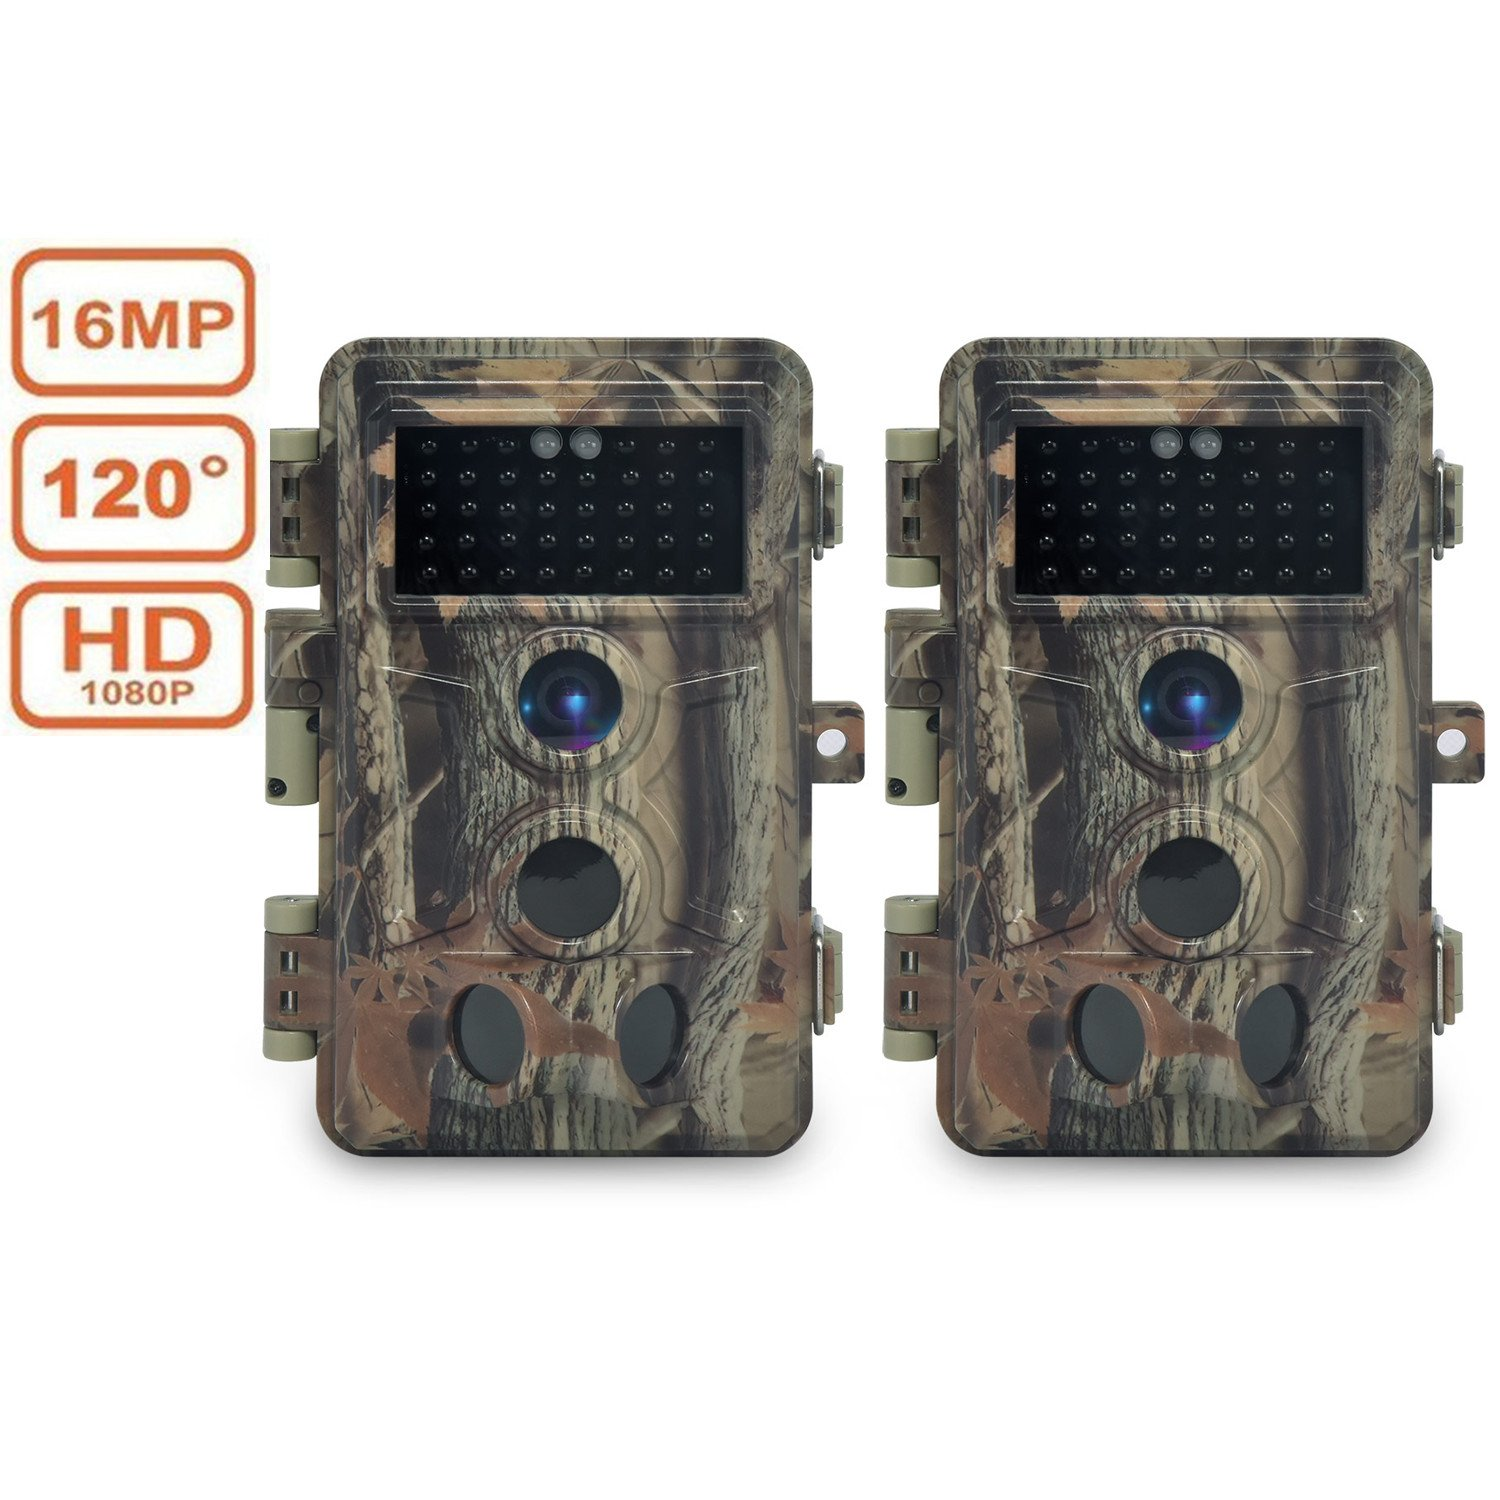 DIGITNOW Trail Camera 16MP 1080P HD Waterproof , Wildlife Hunting Scouting Game Camera with 40Pcs IR LED Infrared Night Vision Up to 65FT /20M , Surveillance Camera 130° Wide Angle 120° Detection